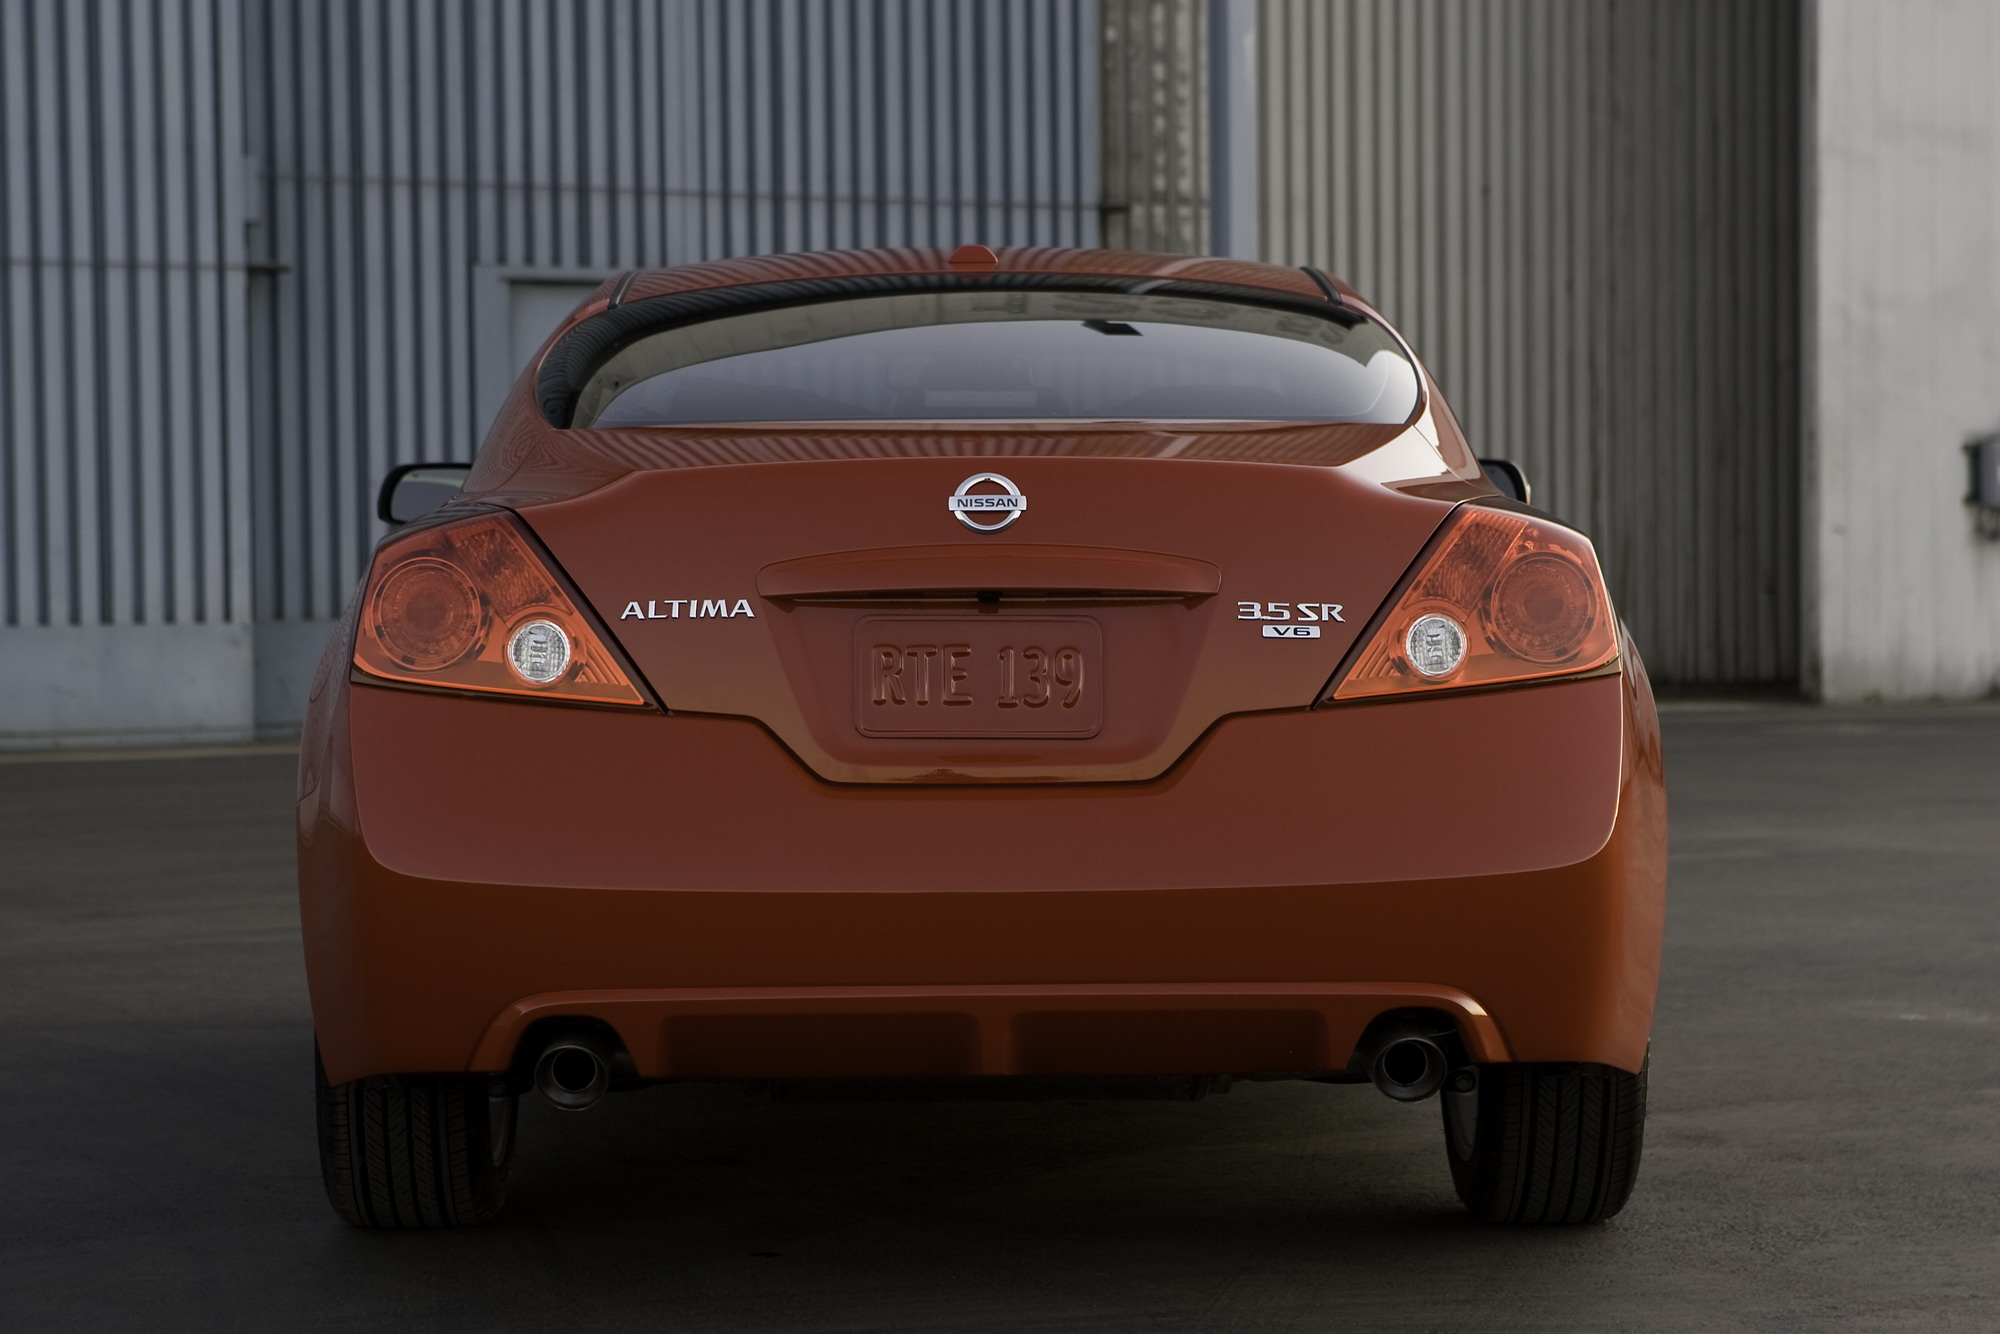 Marvelous 2011 Nissan Altima Coupe | Top Speed. »